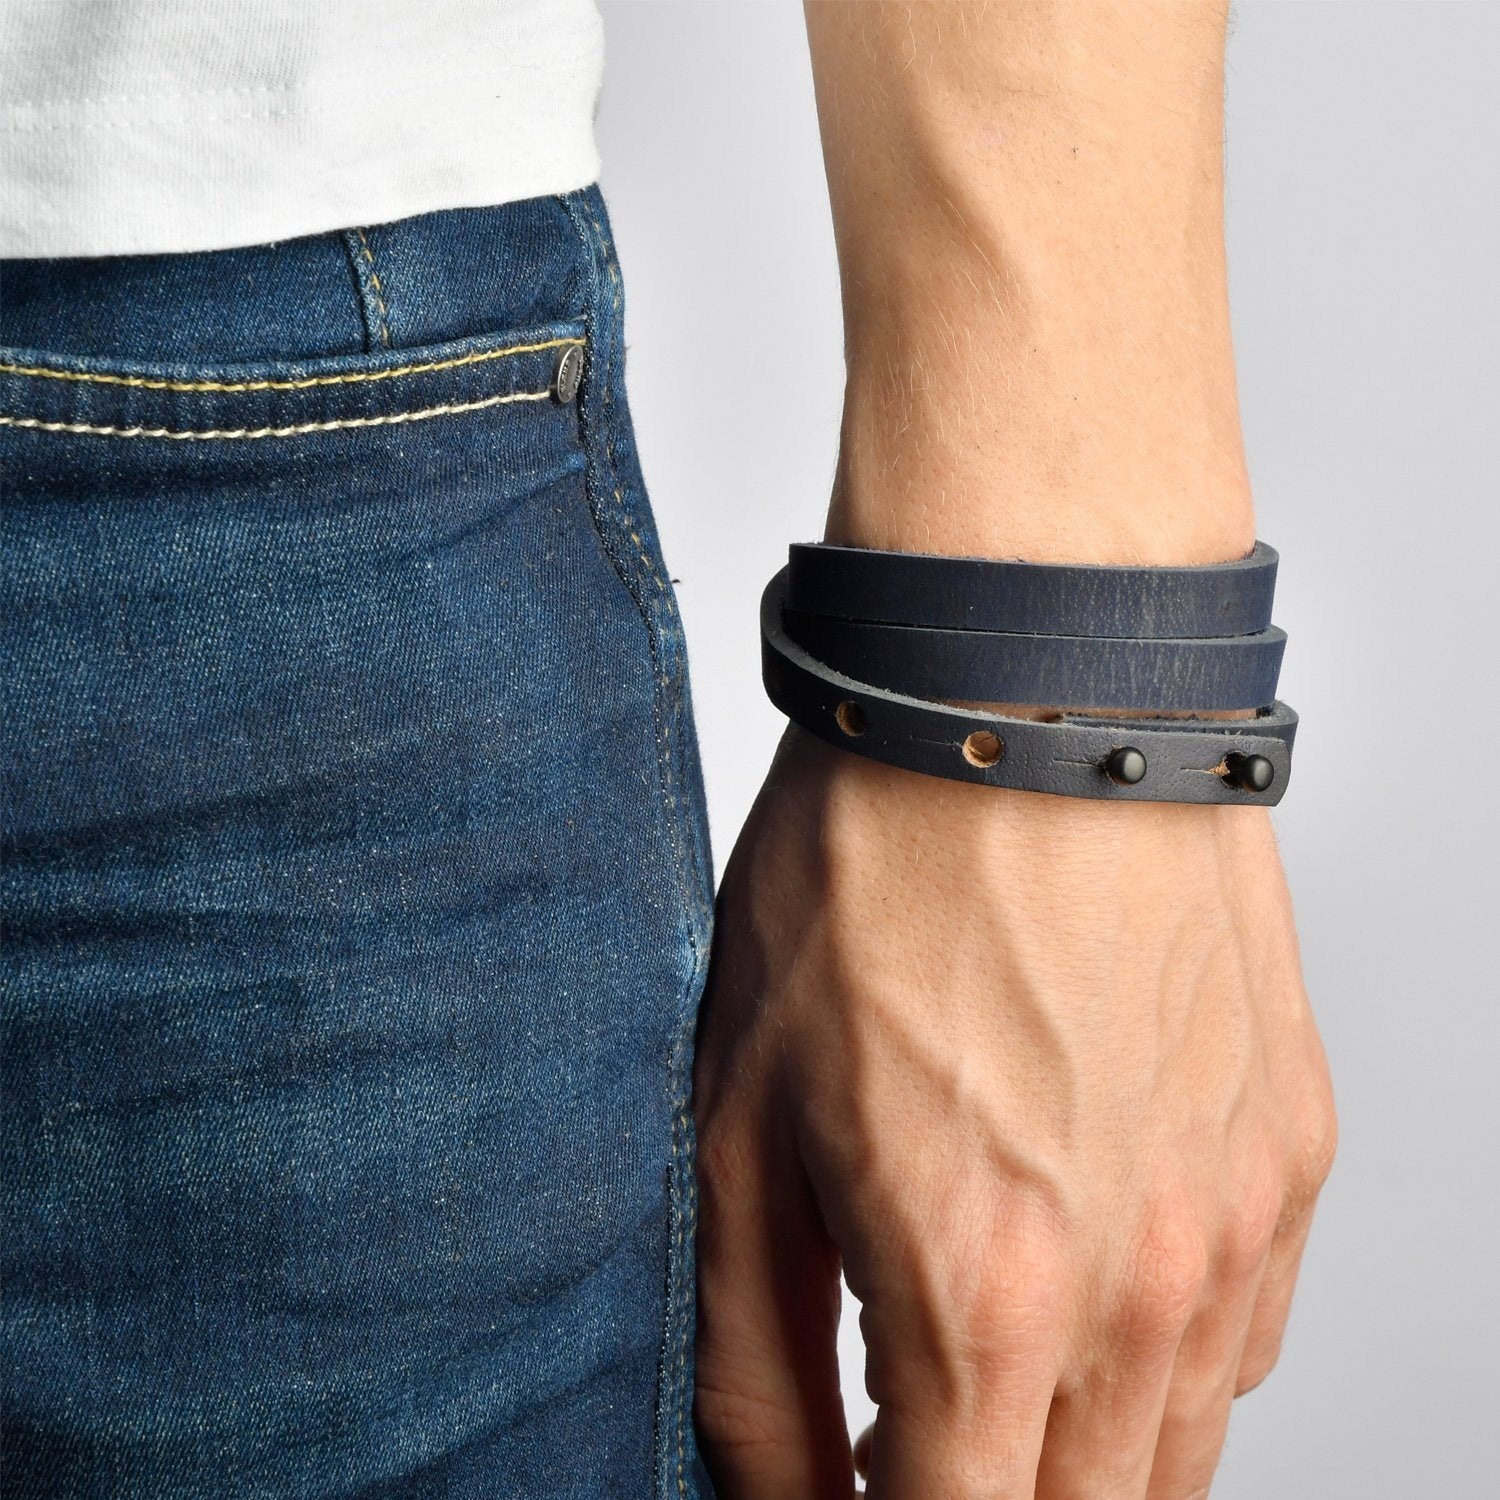 BORA-BORA Leather Mens Womens Cuff Bracelets Designer Wrap Wristbands Navy Blue Matte Black | Fathom Bracelets